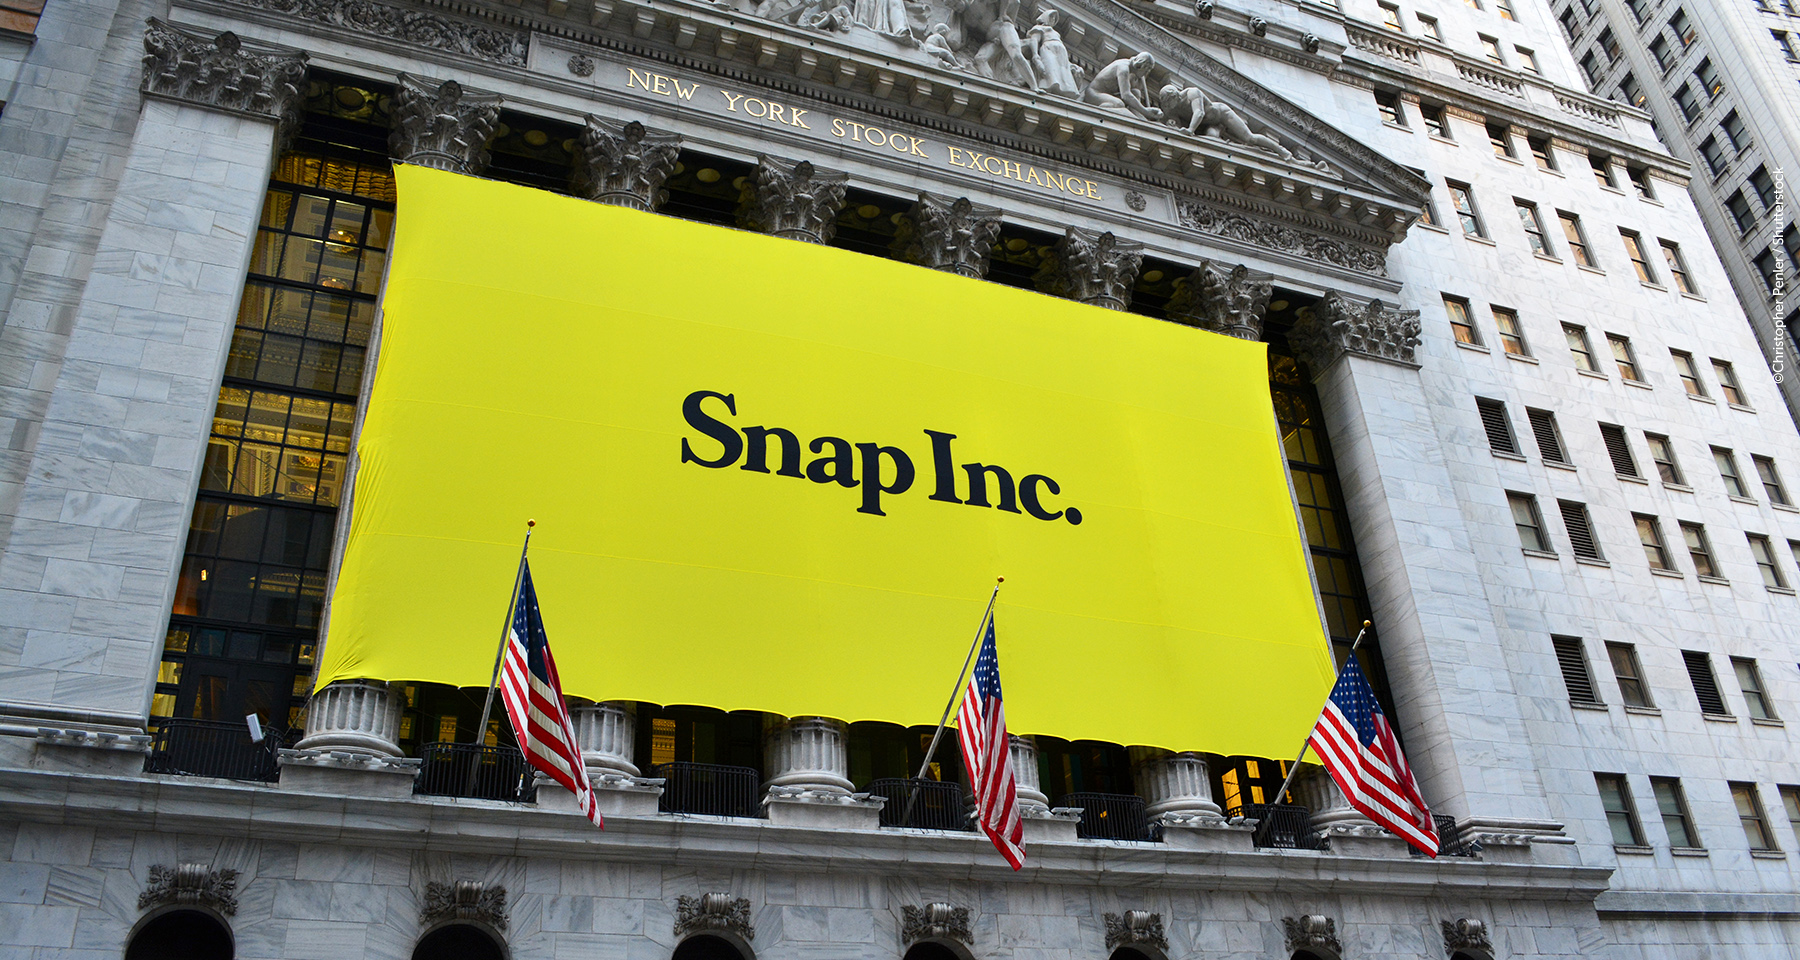 Snap Inc. starts strong, but what unique features does it deliver for brands?